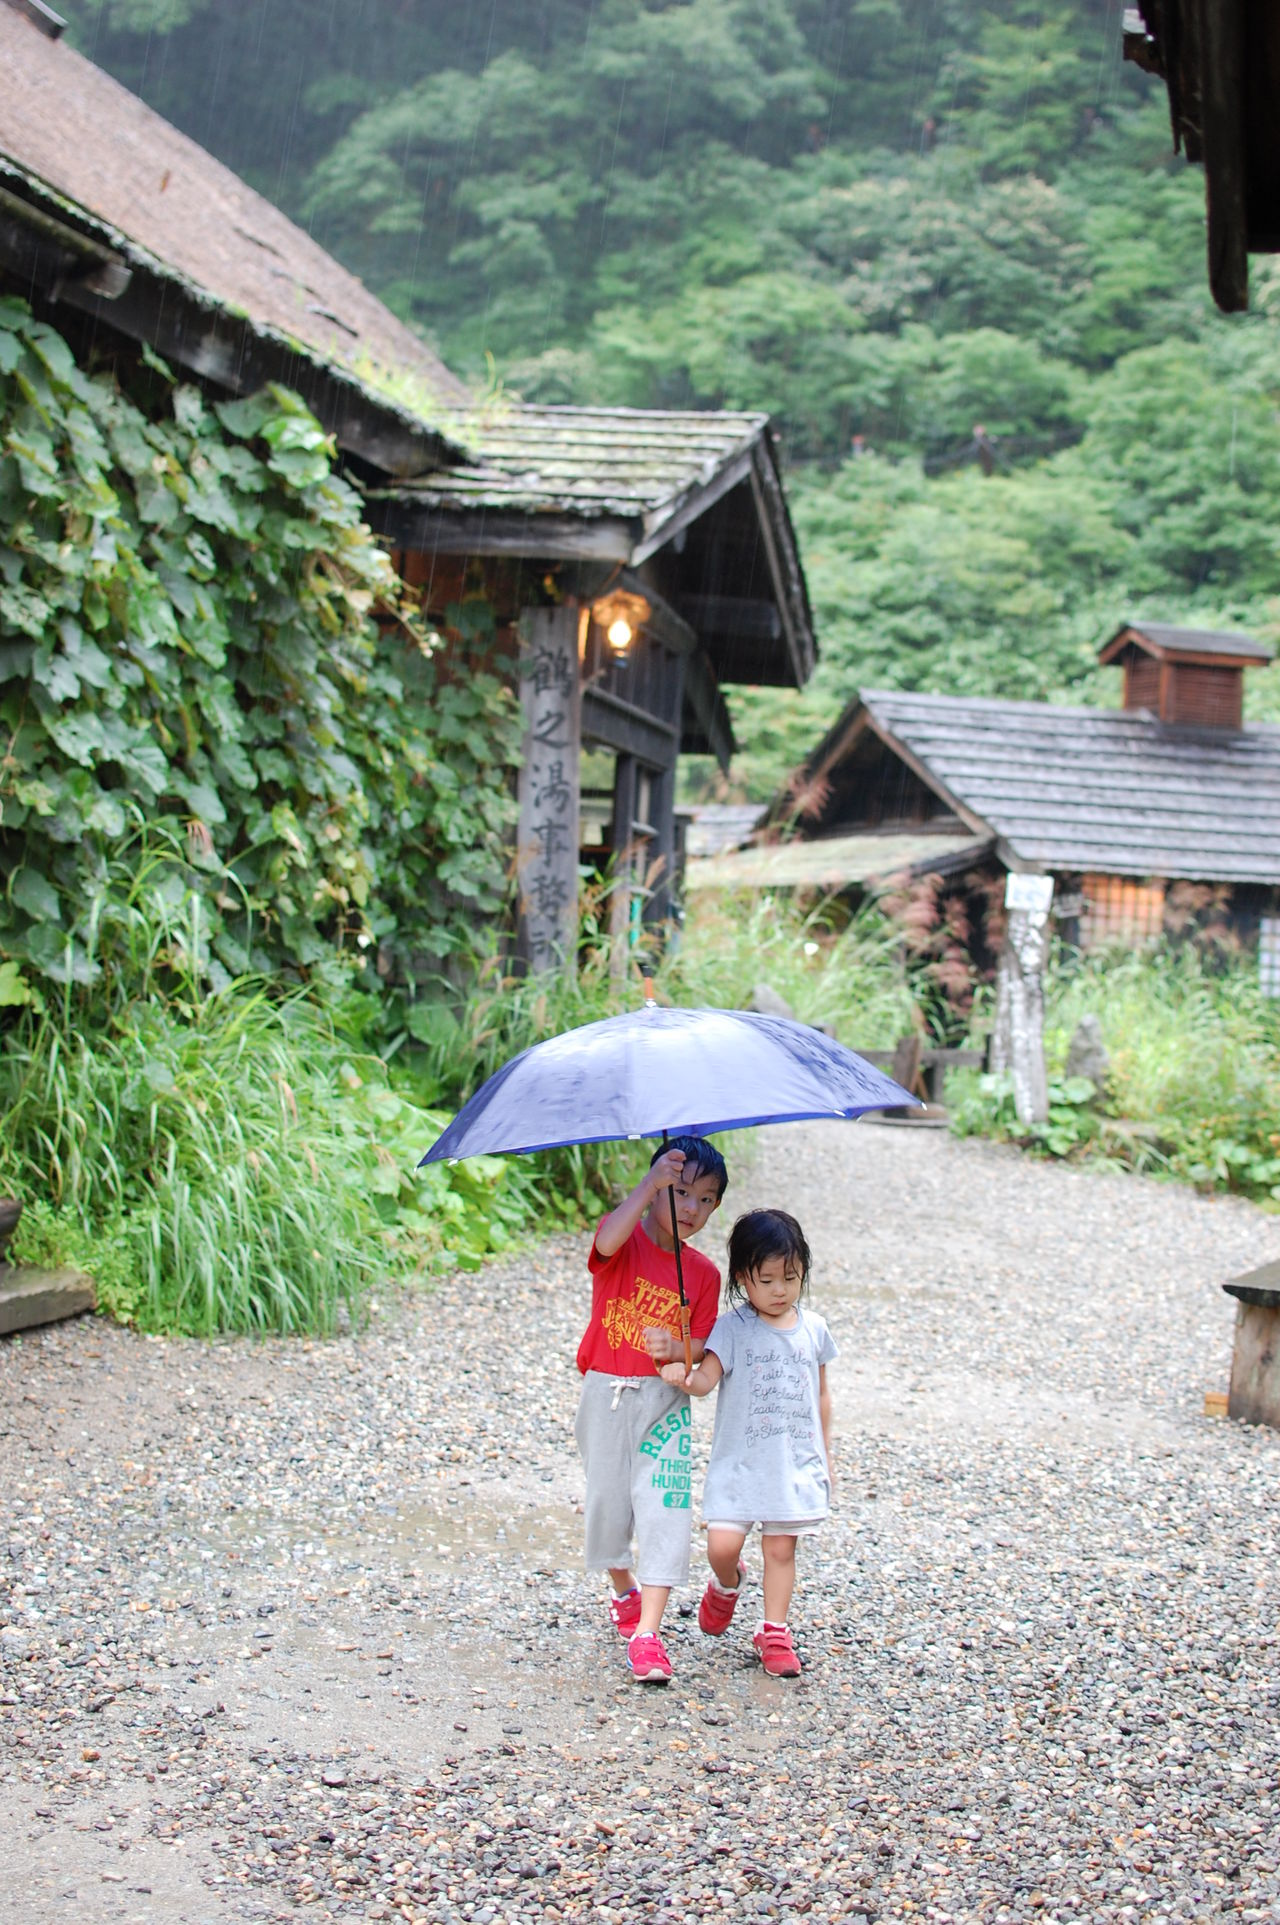 Ultimate Japan Tsurunoyu Hotspring Akita Japanese  Japan Rain Umbrella On The Way Siblings Sister Brother Girl Boy 兄妹 兄 妹 傘 雨 乳頭温泉郷 鶴の湯 秋田県 Miles Away